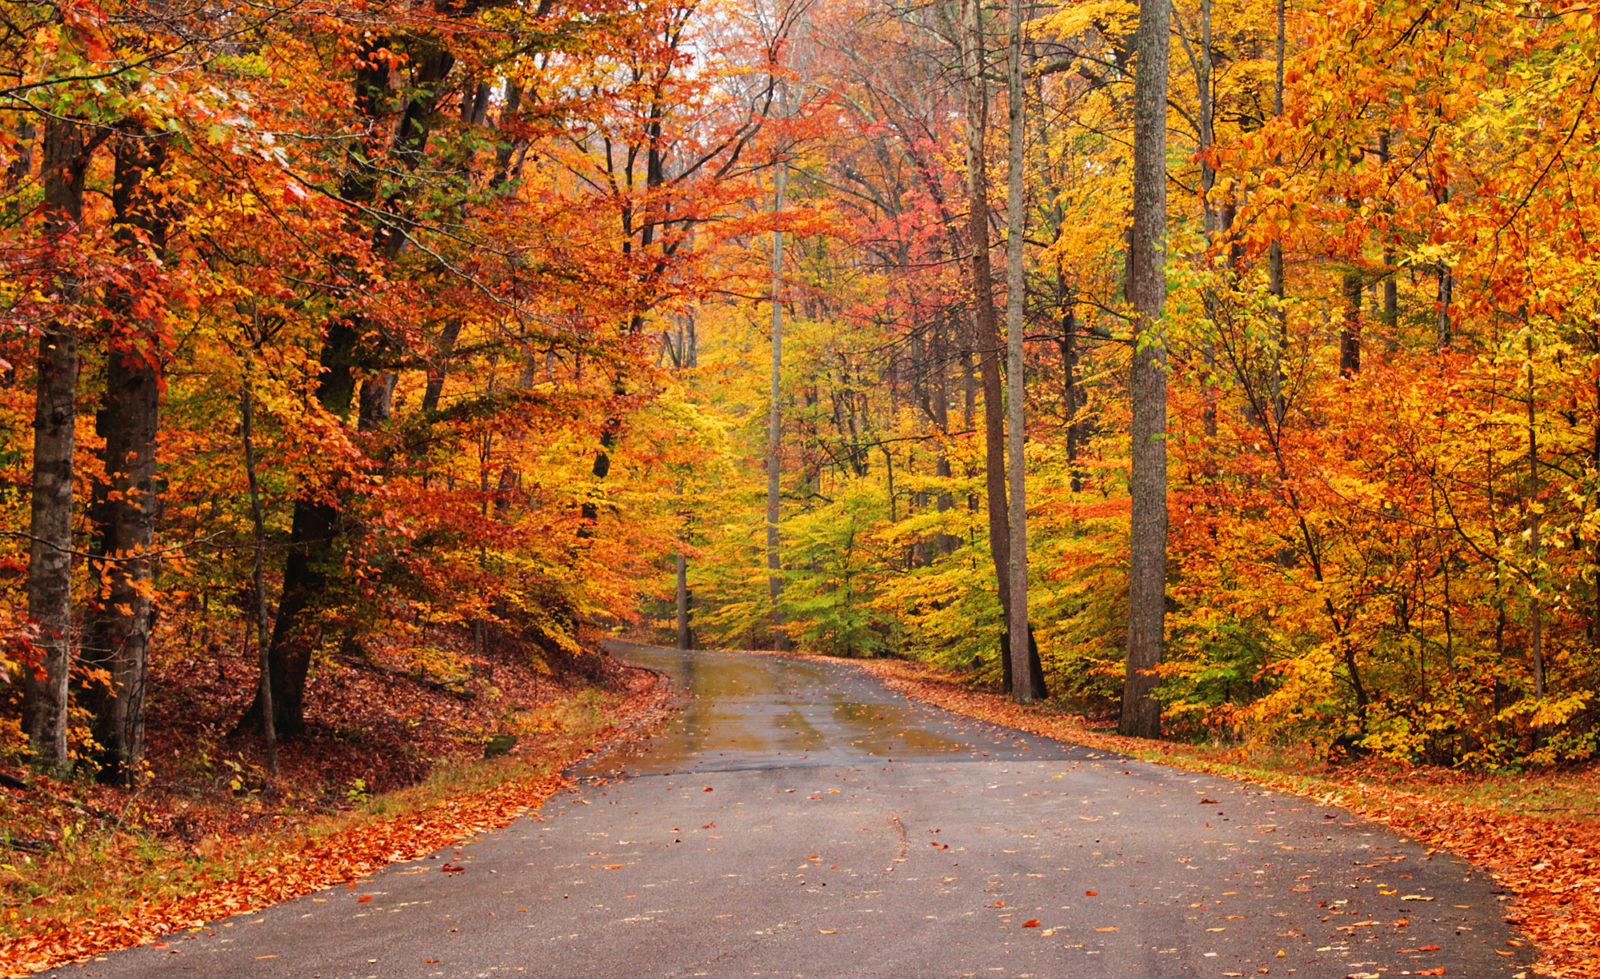 Autumn Roads - Outdoor Photographer: www.outdoorphotographer.com/photo-contests/great-outdoors/entry...